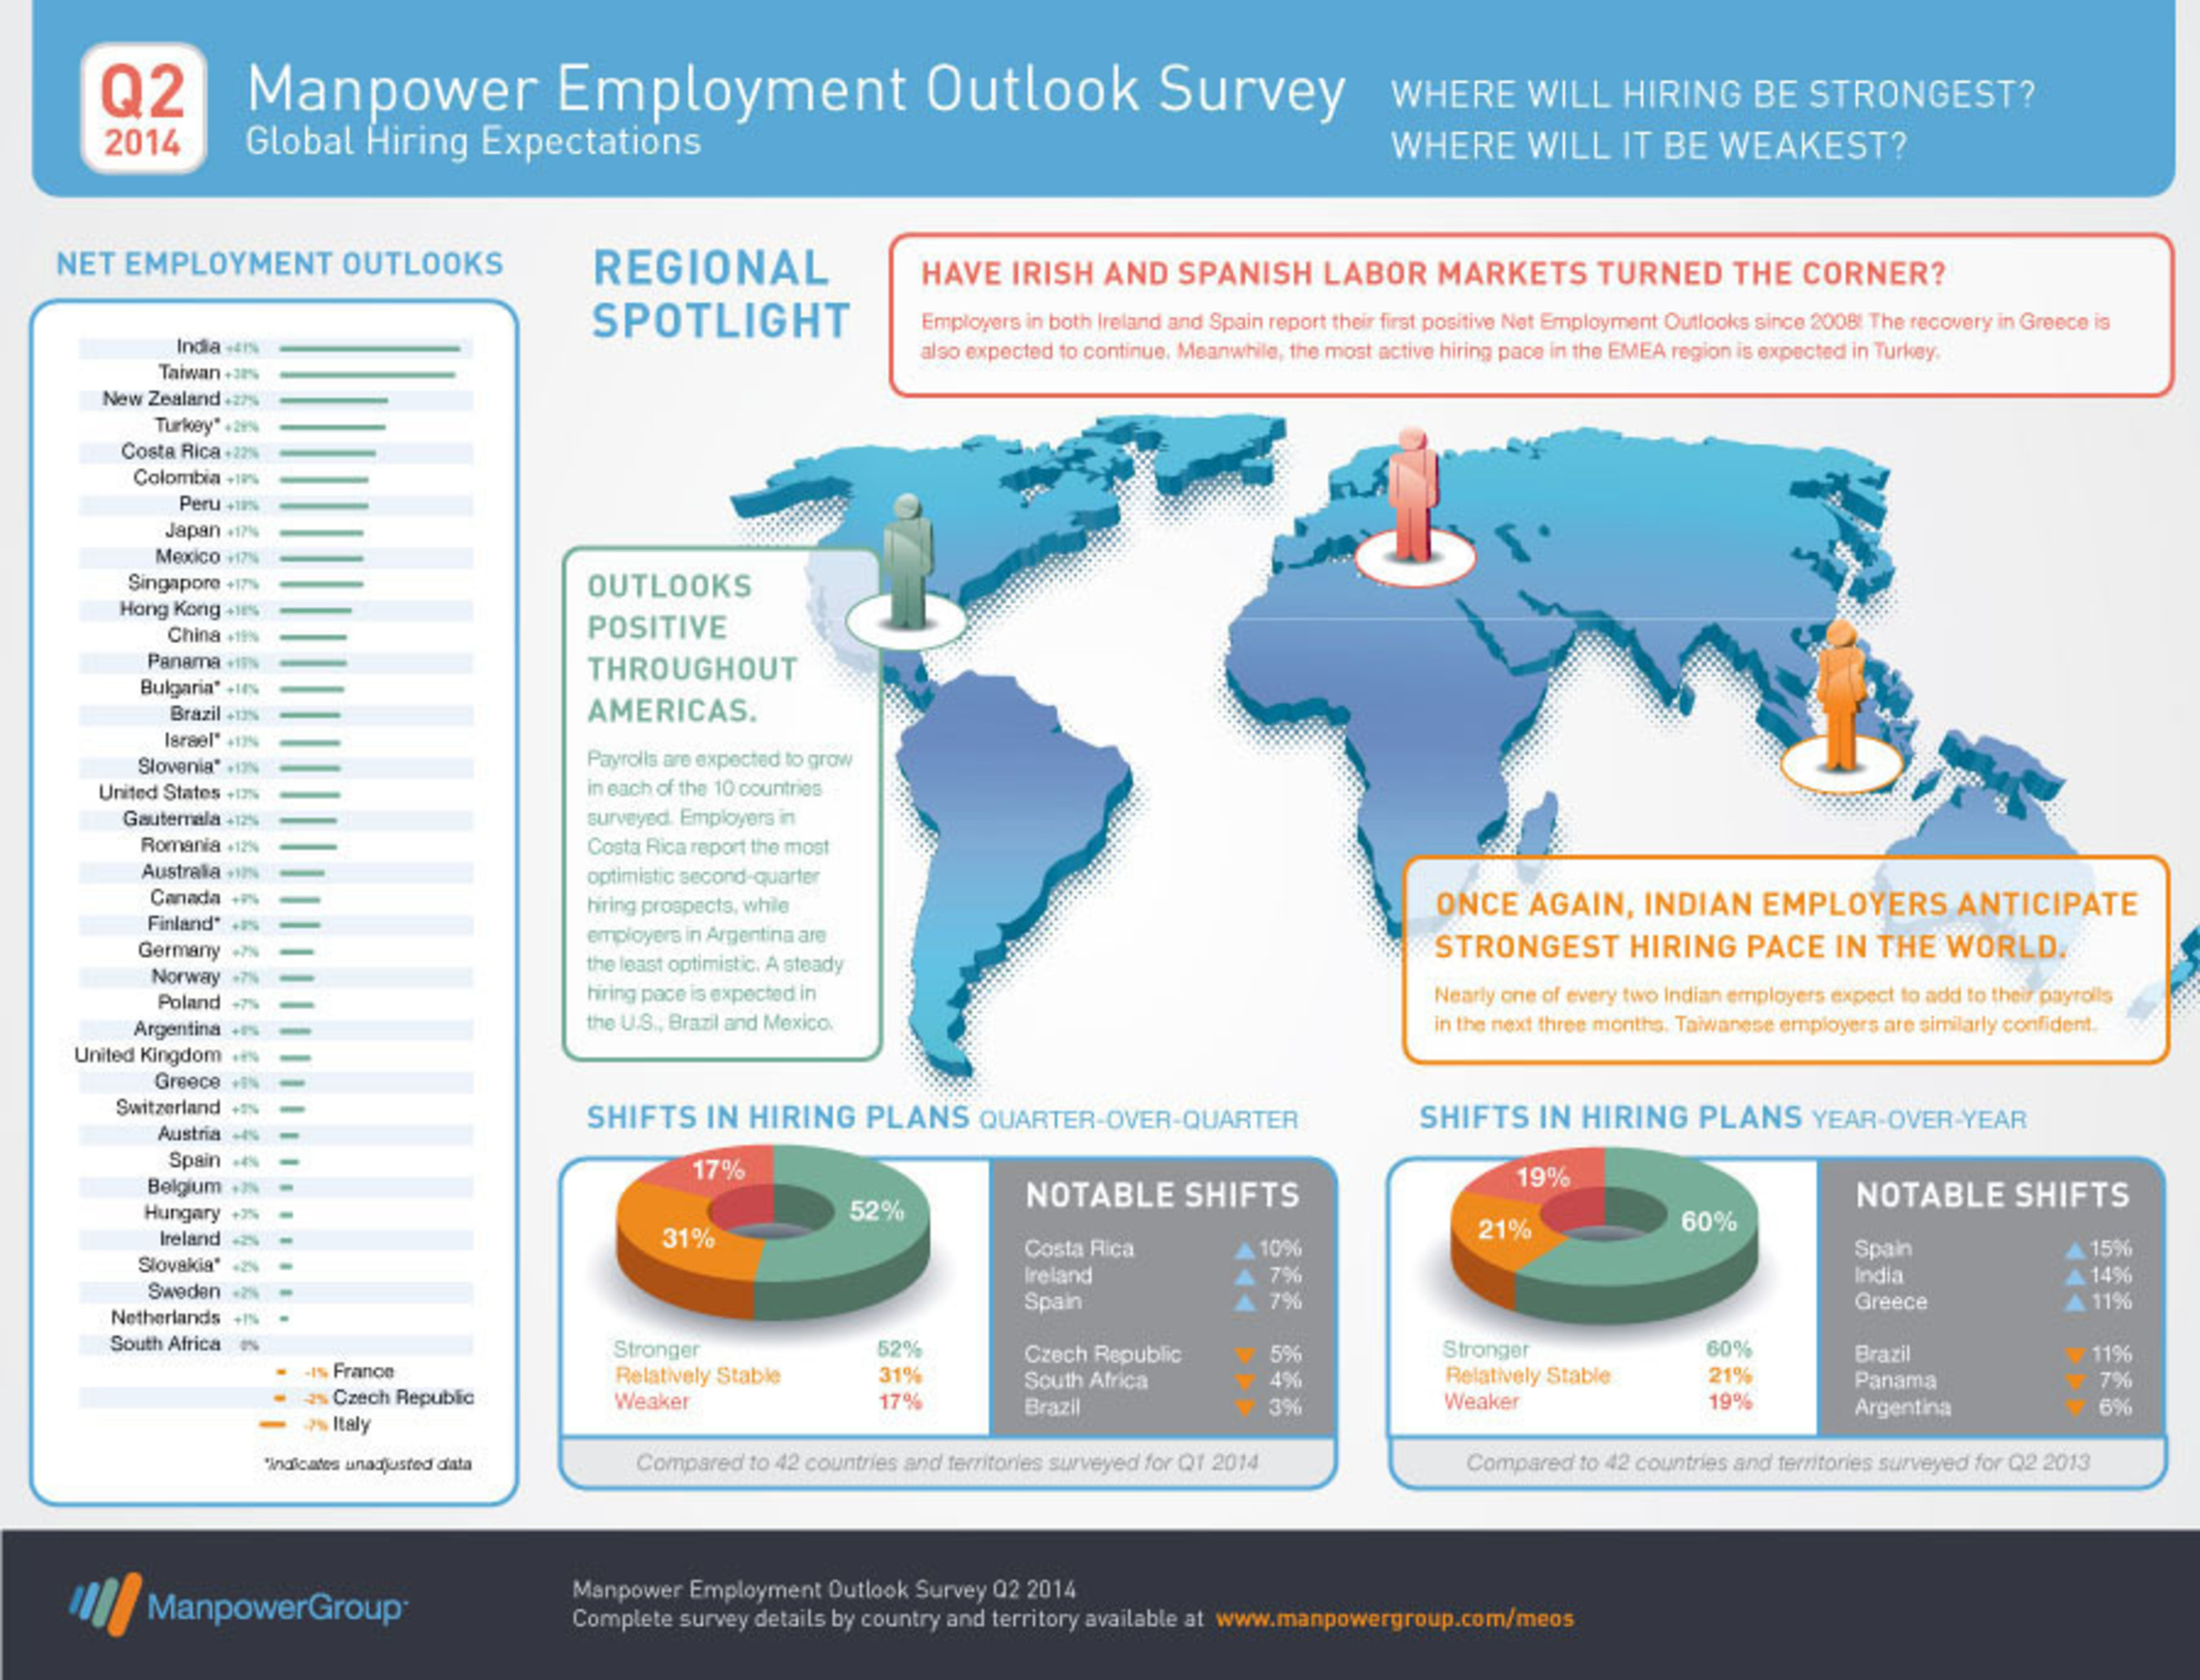 Q2 2014 Manpower Employment Outlook Survey: Global Hiring Expectations. Where will hiring be strongest? Where will it be weakest?  (PRNewsFoto/ManpowerGroup)